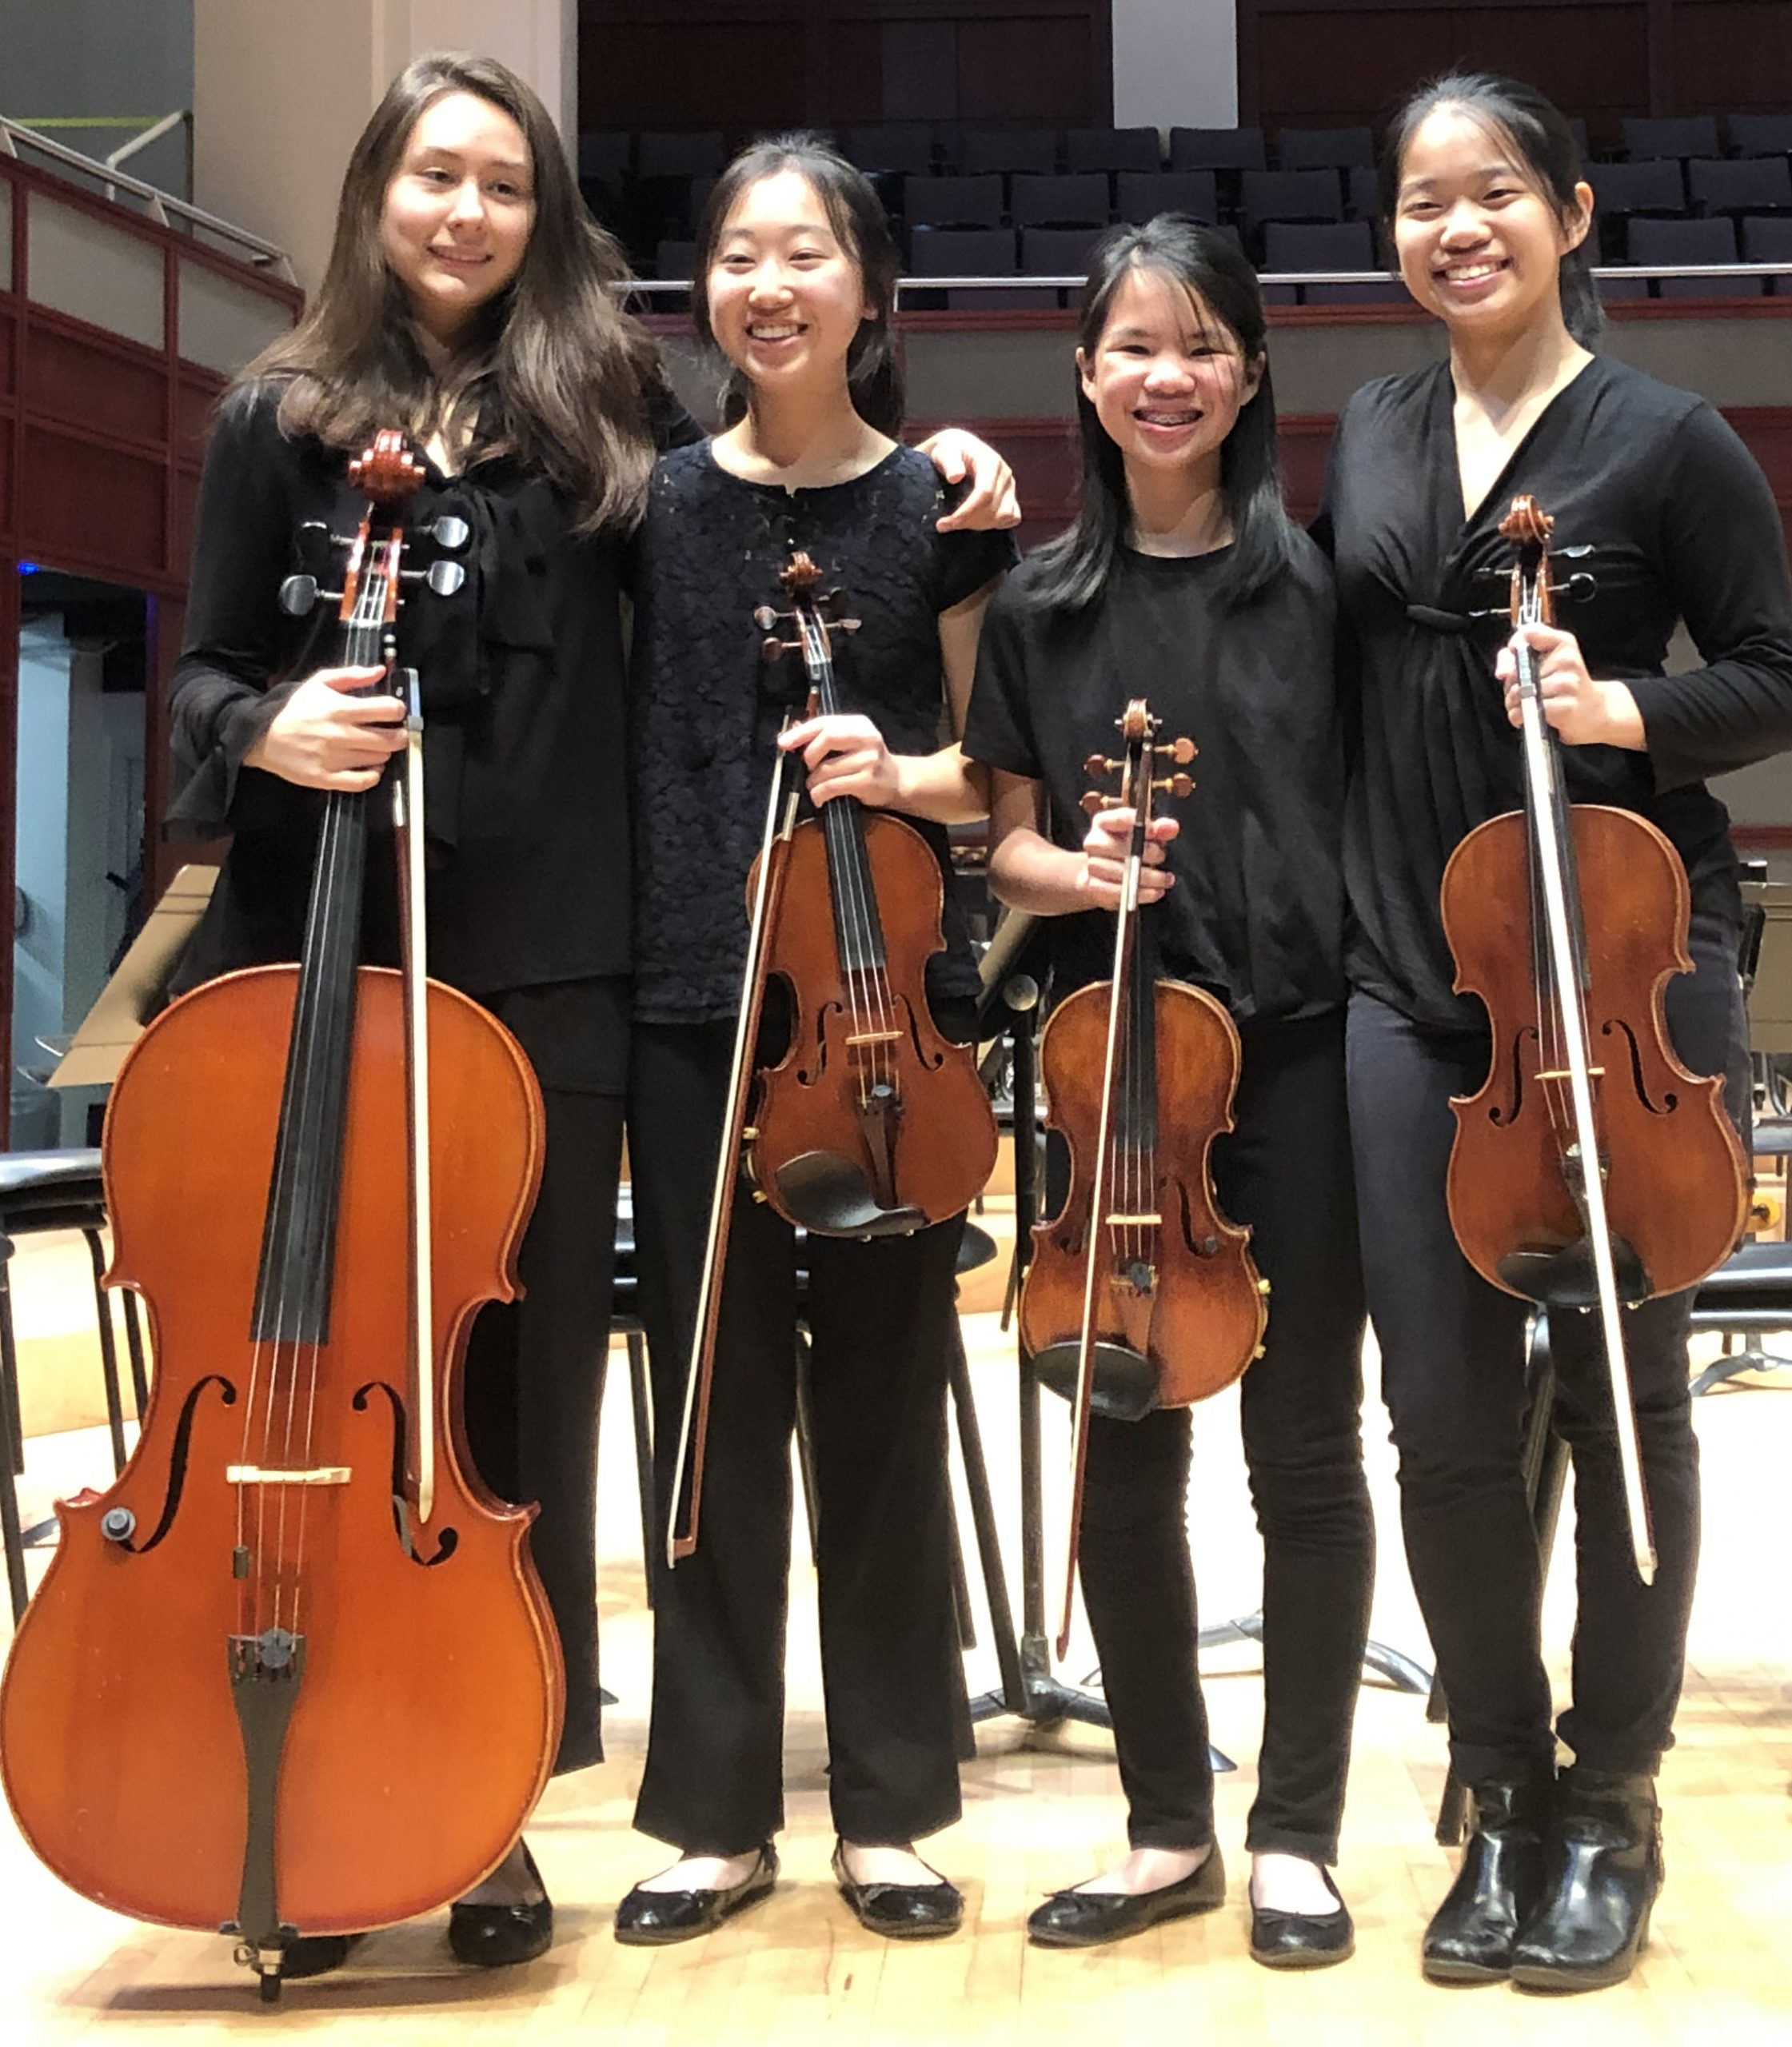 Members of the PA String Quartet